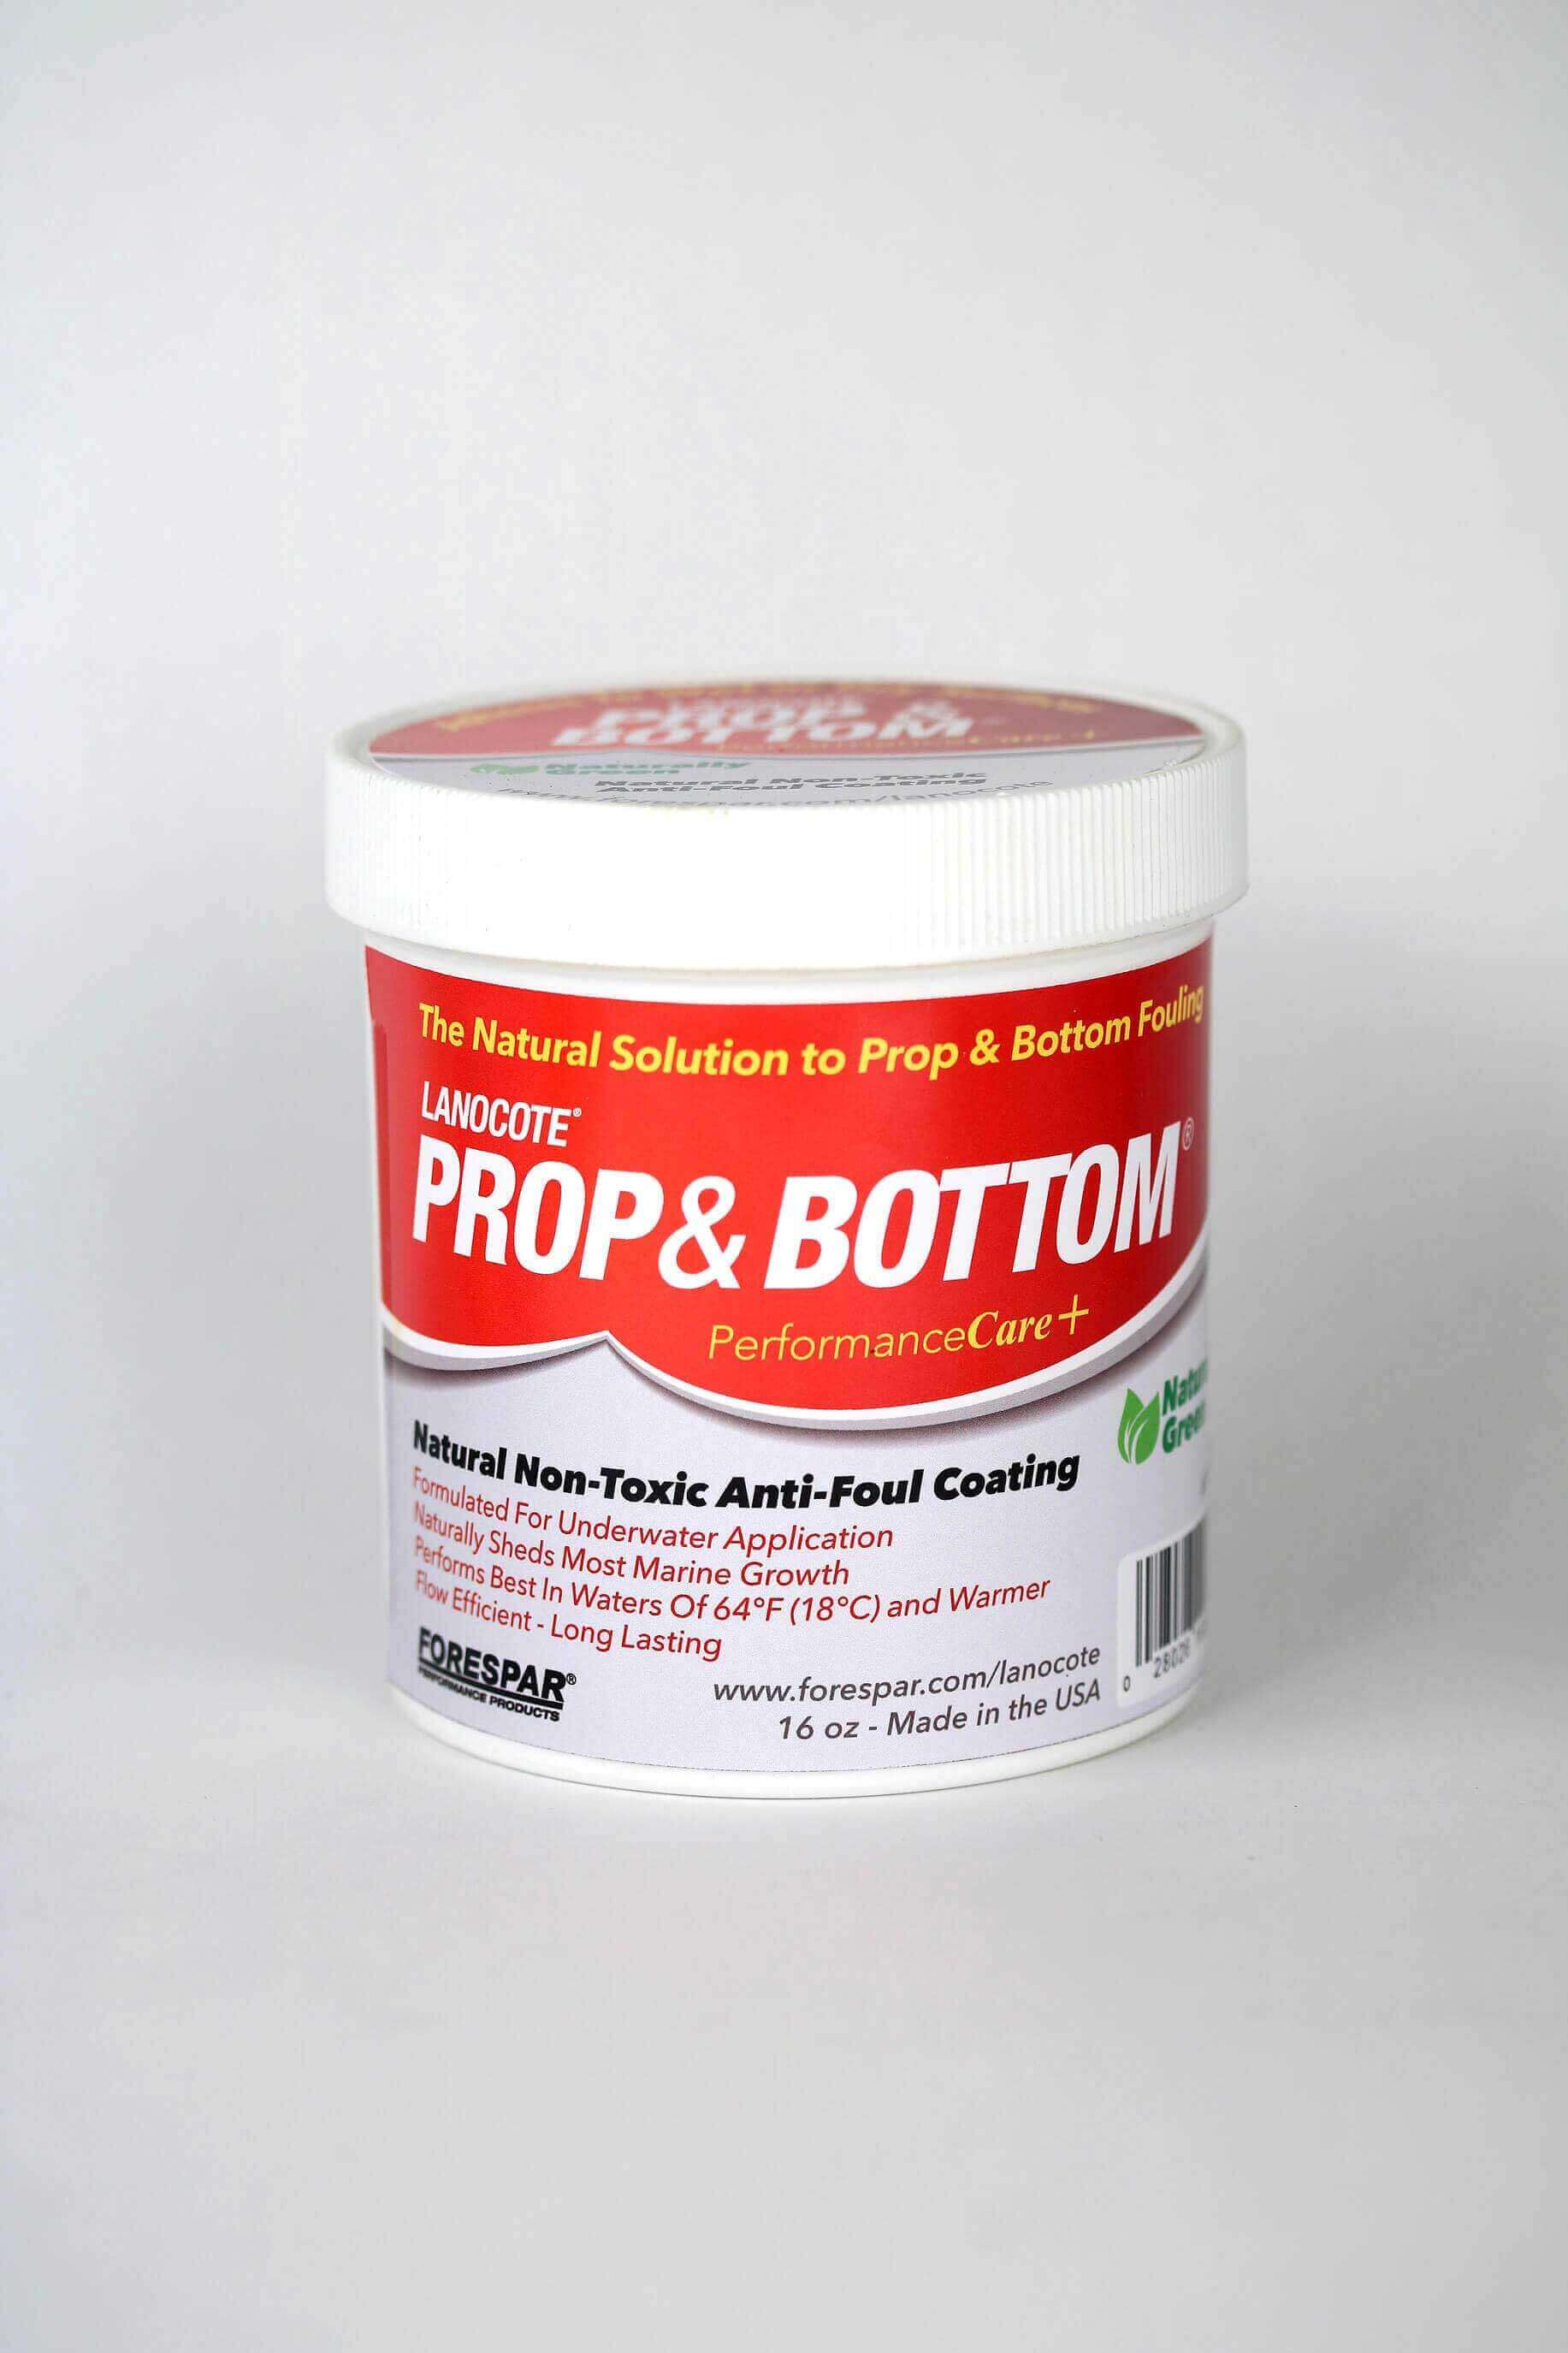 770035-Frspr-Lanocote-Prop-16oz-Performan